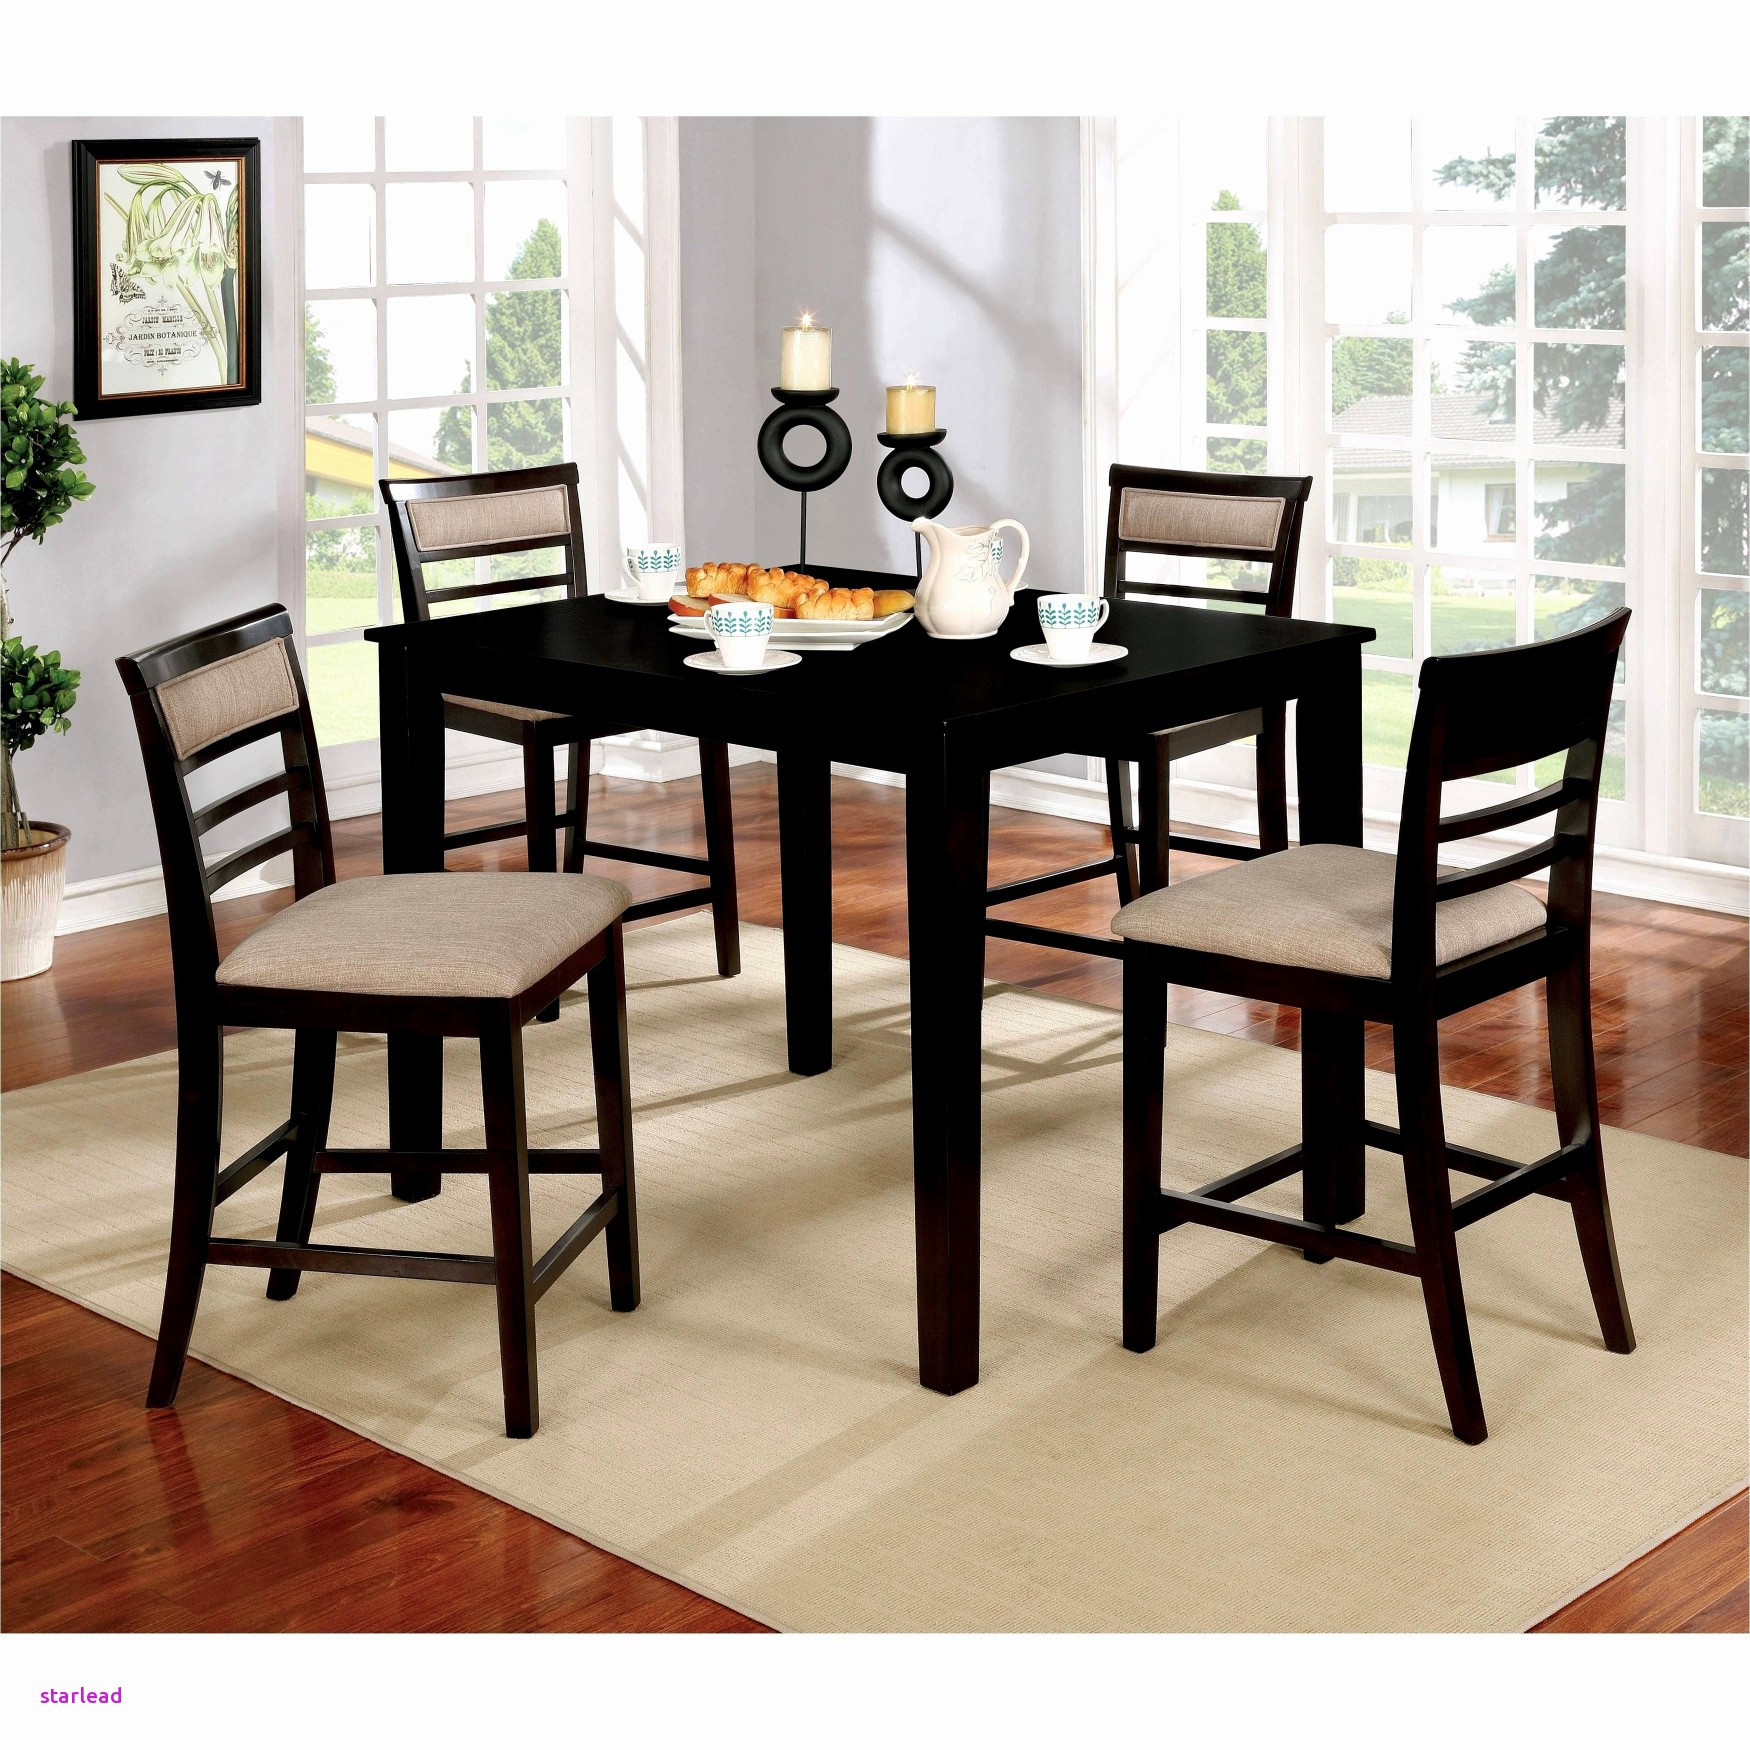 dark hardwood floors for sale of elegant dining room table and chairs for sale or latest designs with astonishing dining room table and chairs for sale at 23 best dark wood dining table coll